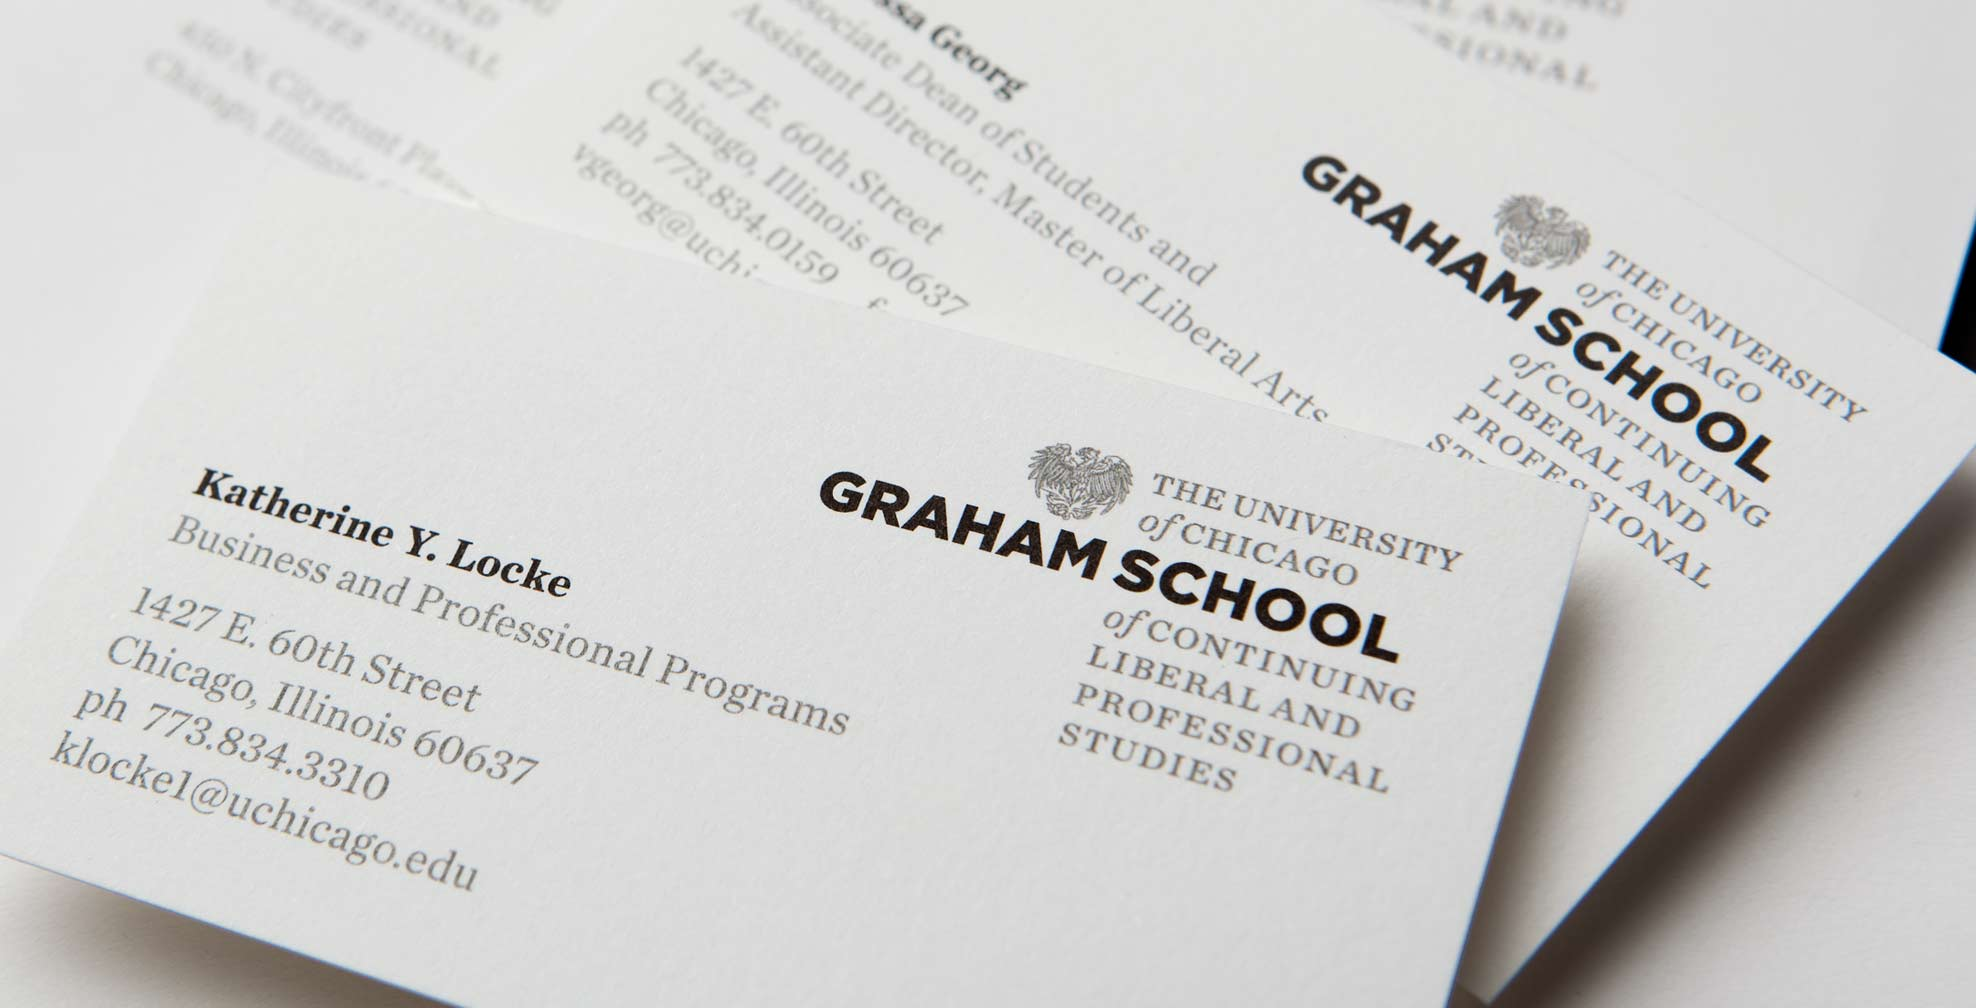 university of chicago graham school  crosby associates  chicago